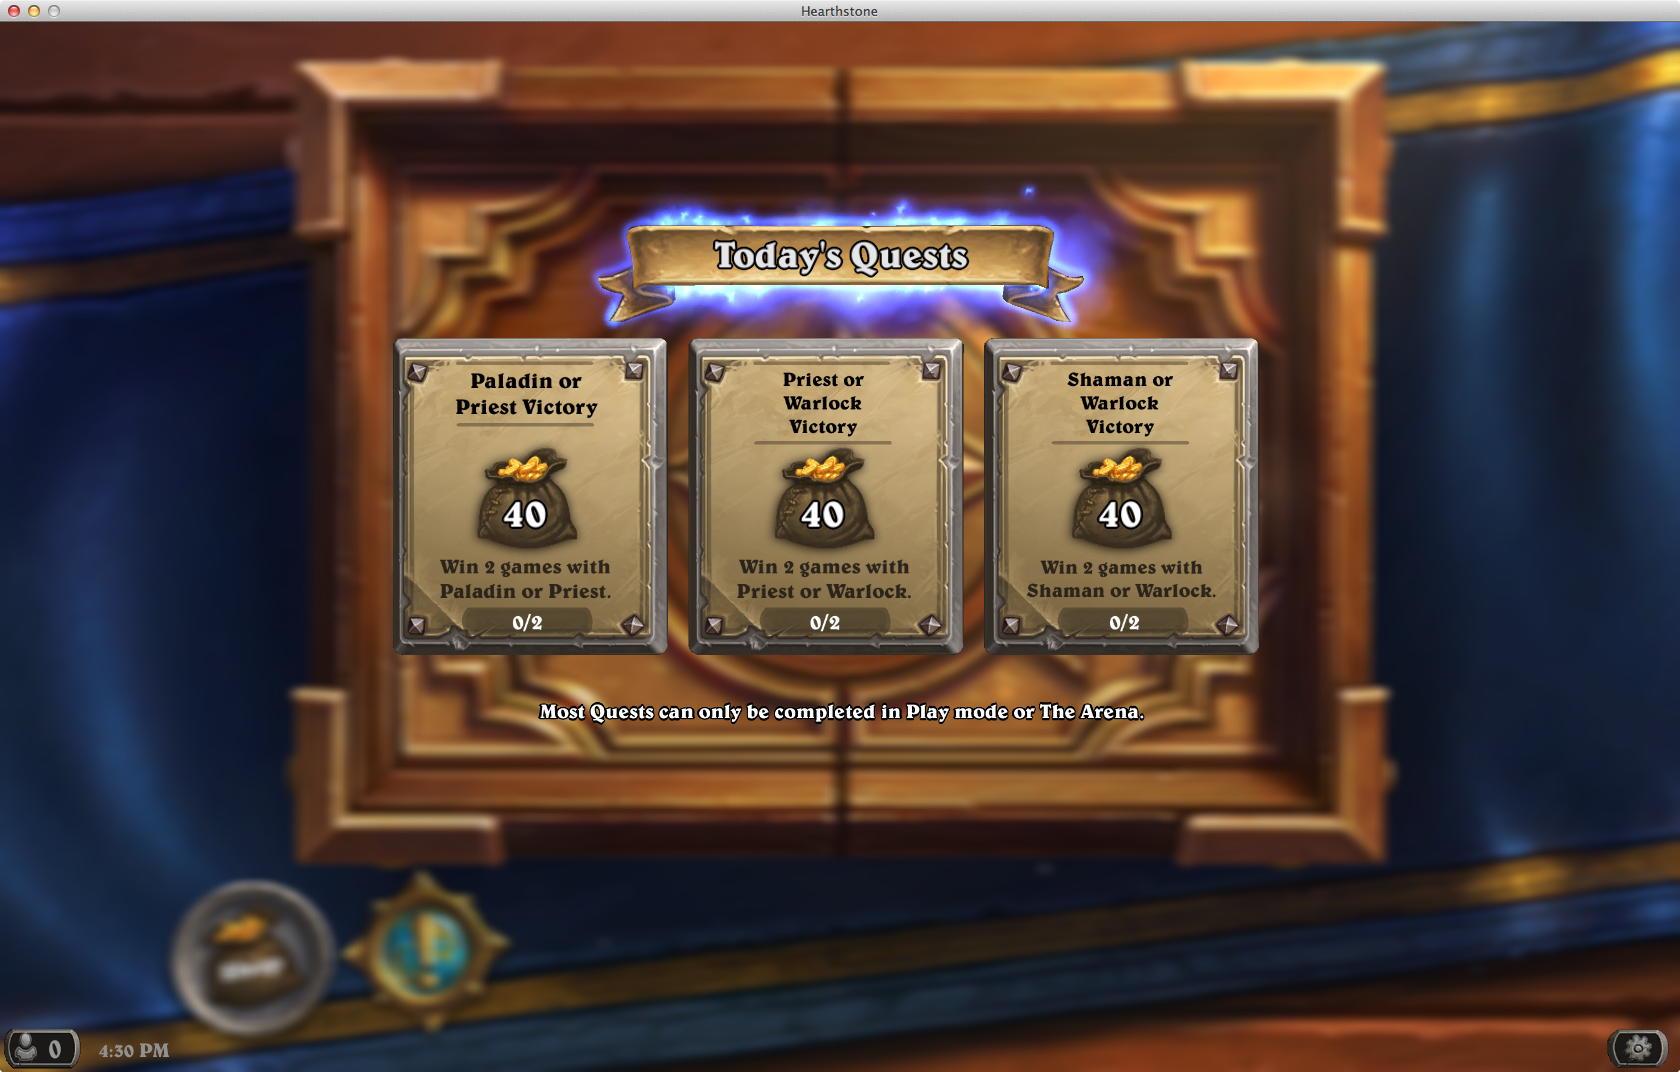 Hearthstone-quests